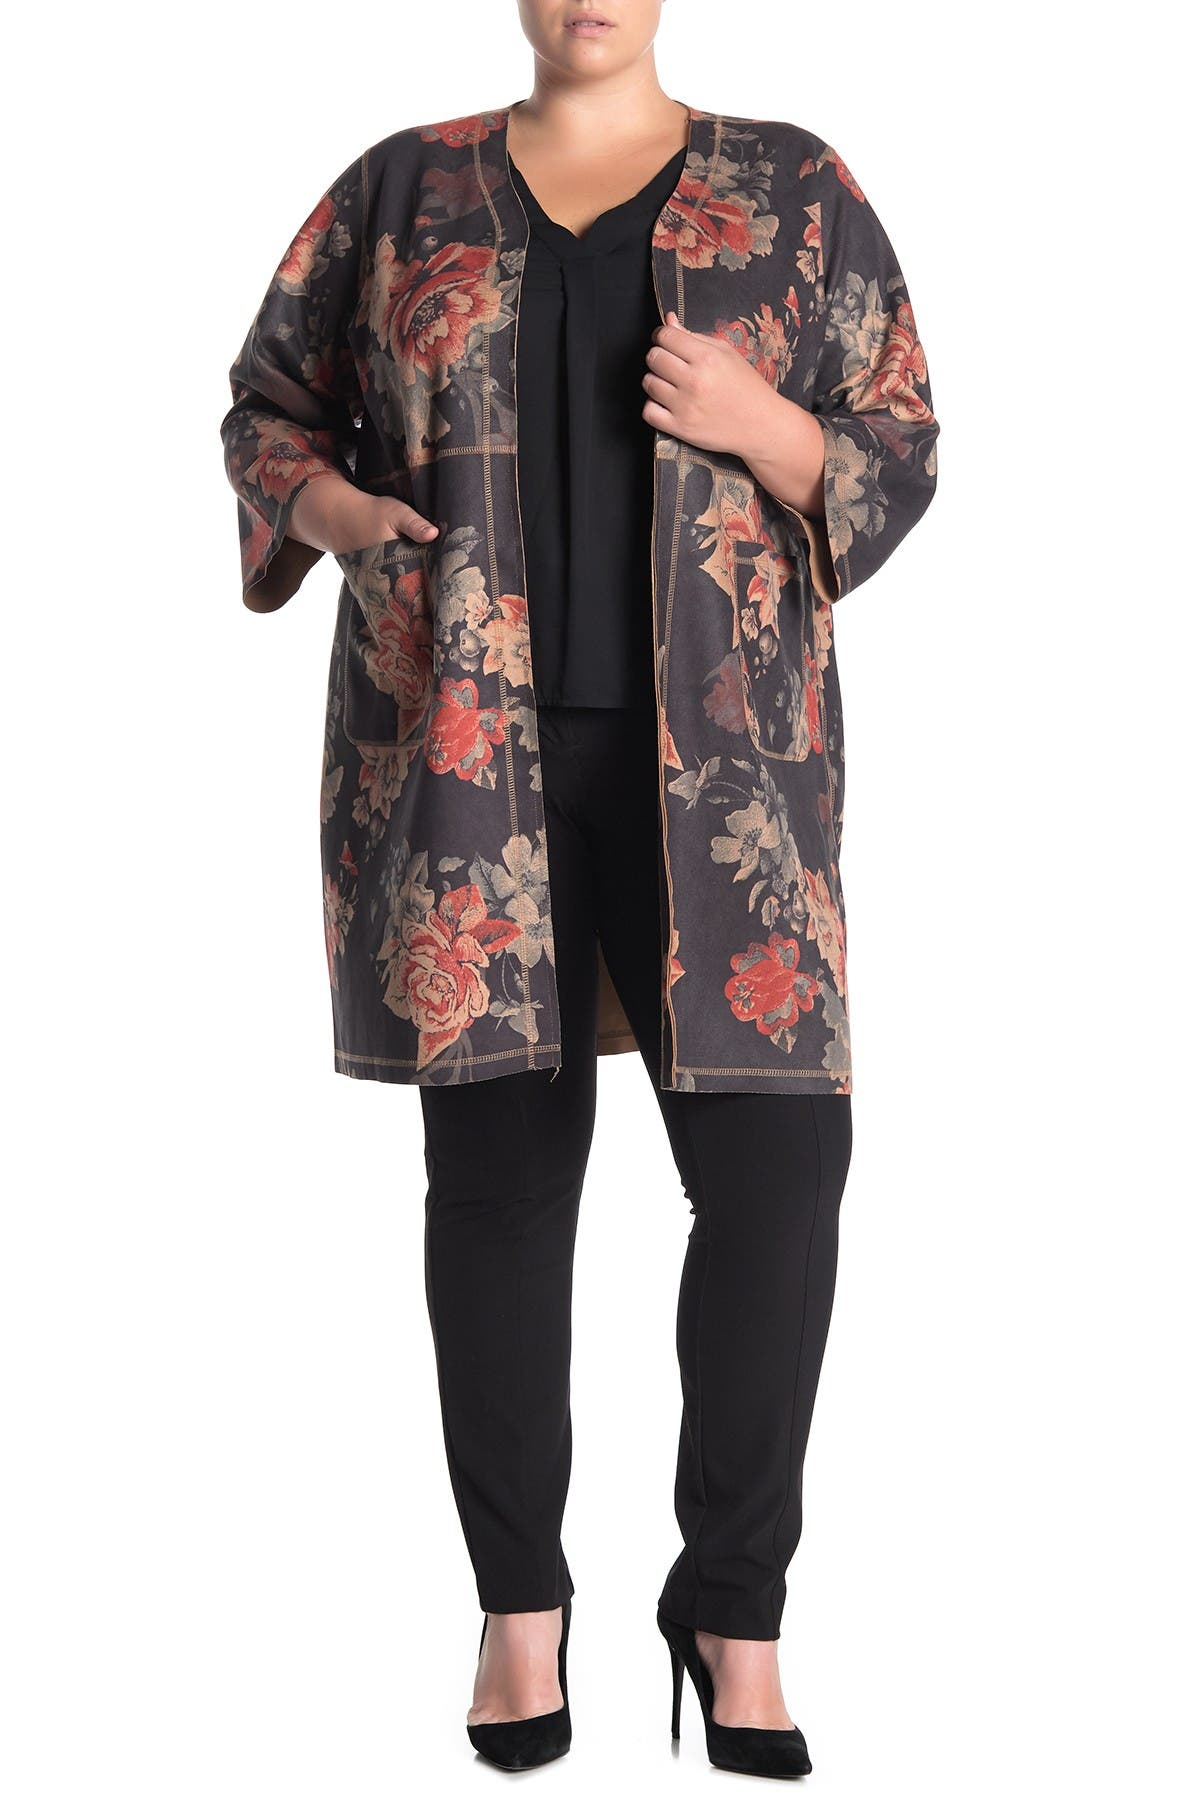 Image of T Tahari Floral Print Faux Suede Topper